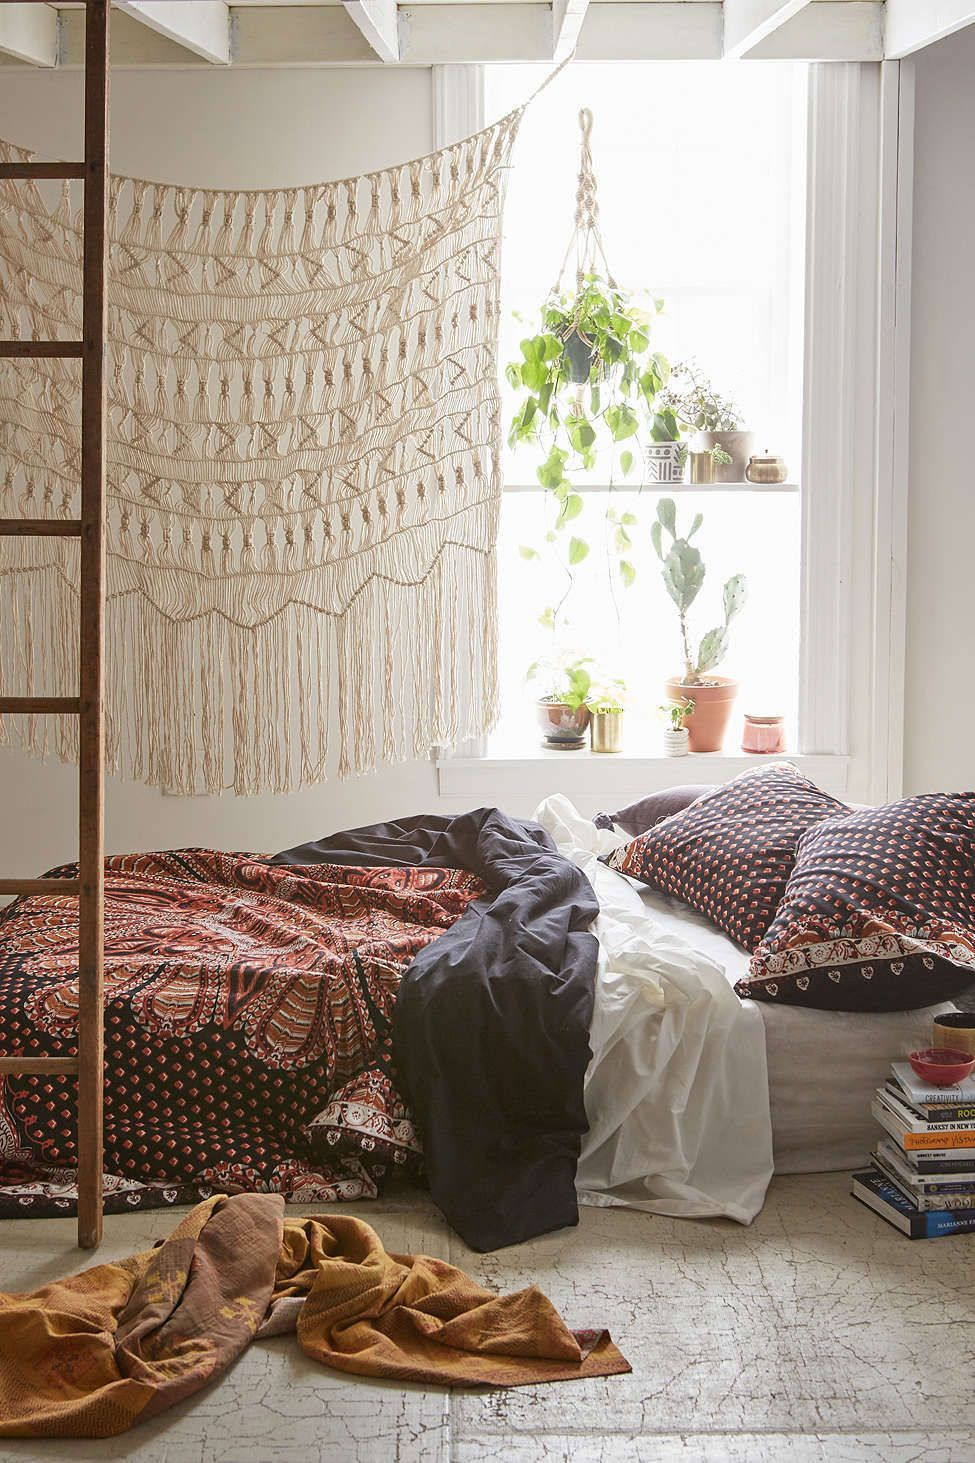 Dreamy Boho Bedroom Daily Dream Decor Boho Bedrooms